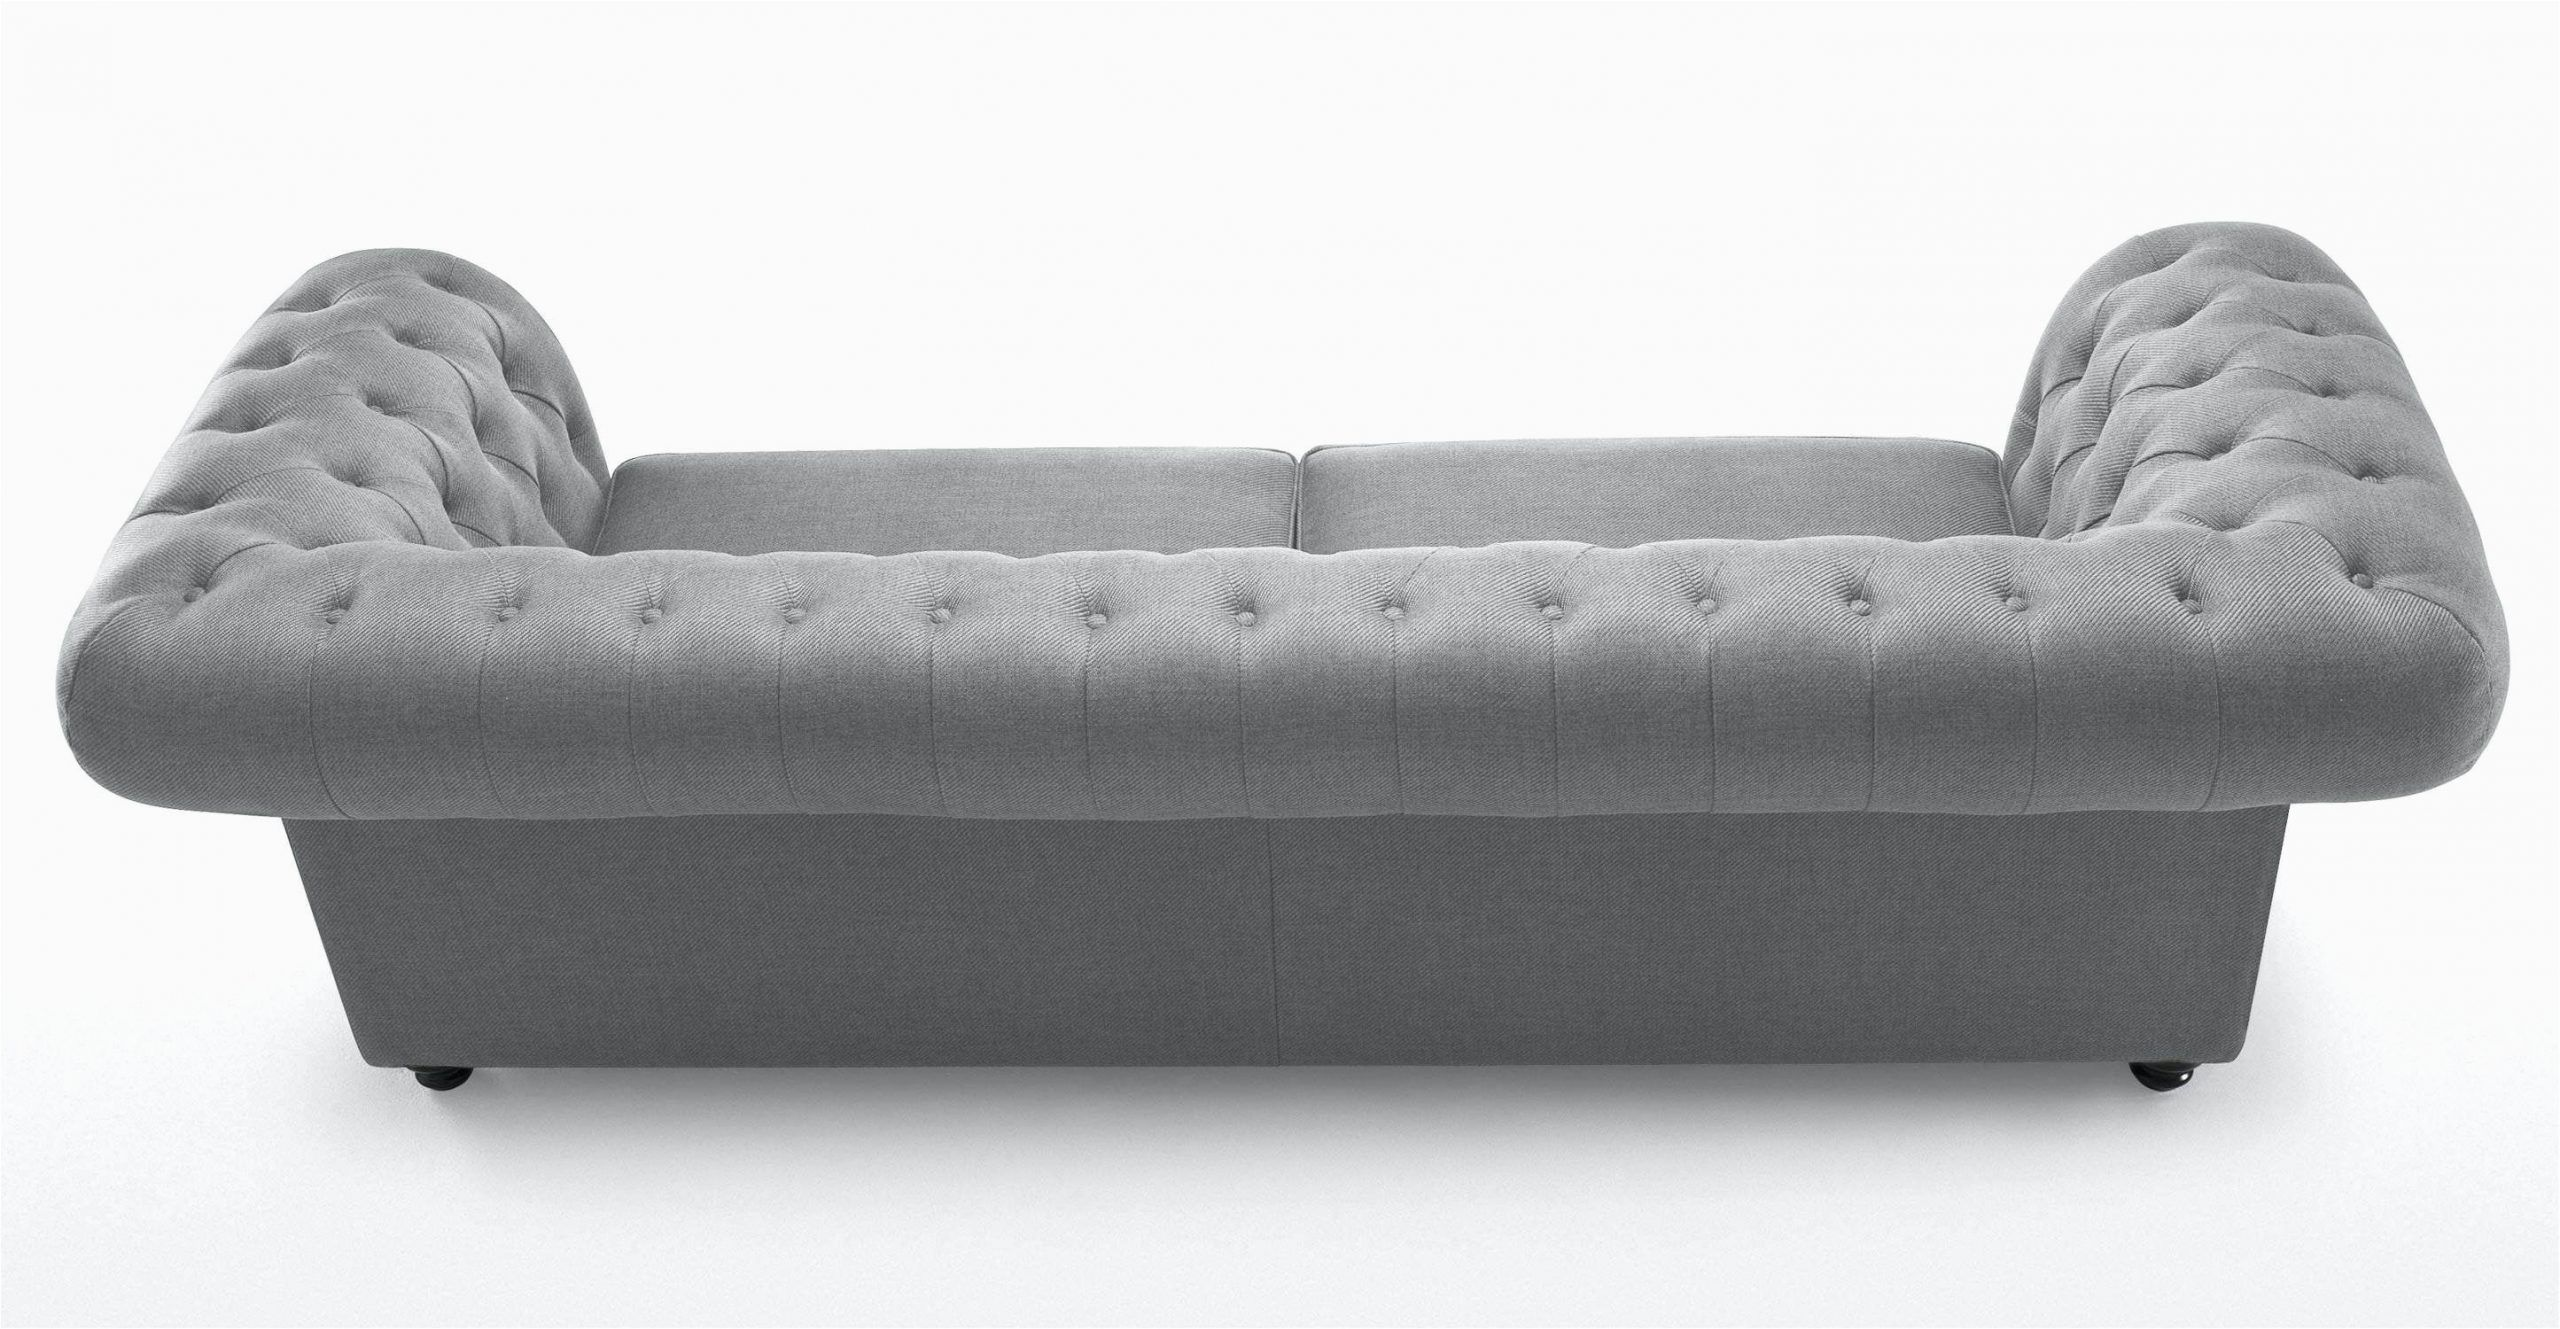 Second Hand Sofa Beds Ebay Grey Leather Chesterfield Sofa Chesterfield Furniture Leather Chesterfield Sofa